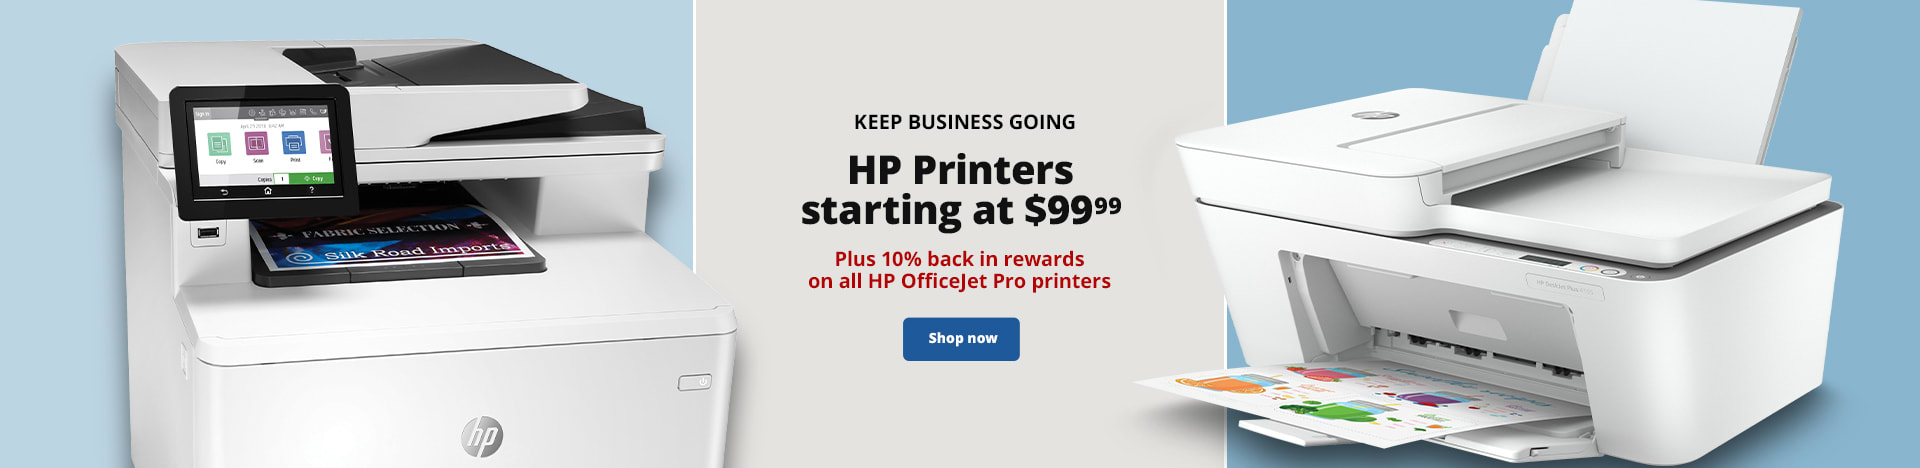 Keep Business Going. HP Printers starting at $99.99. Plus 10% back in rewards on select HP OfficeJet Pro printers